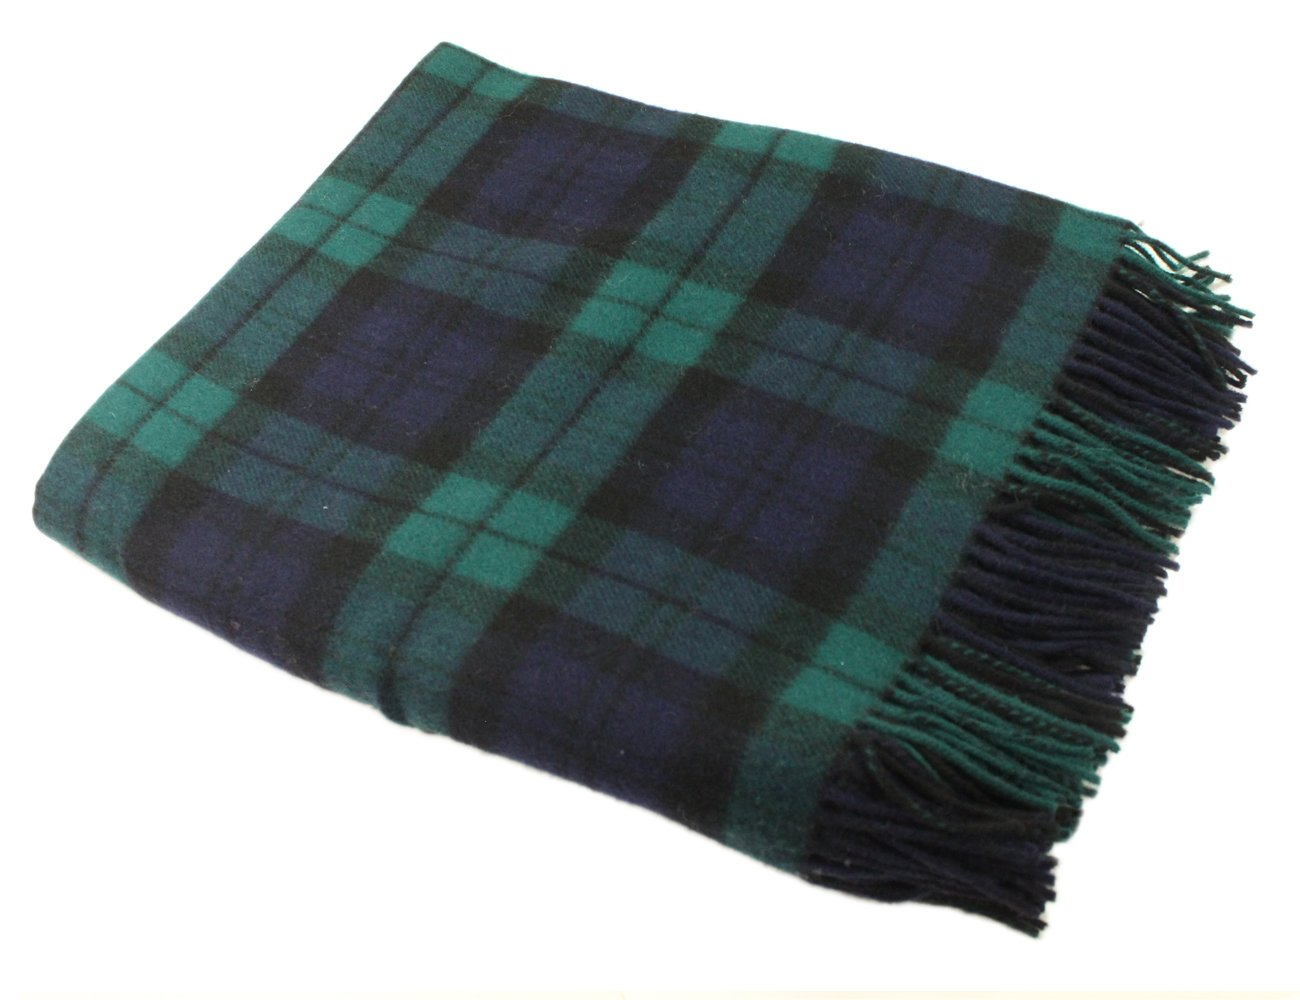 Blackwatch Plaid Blanket 54'' x 71'' Super Soft Lambswool Irish Made by John Hanly